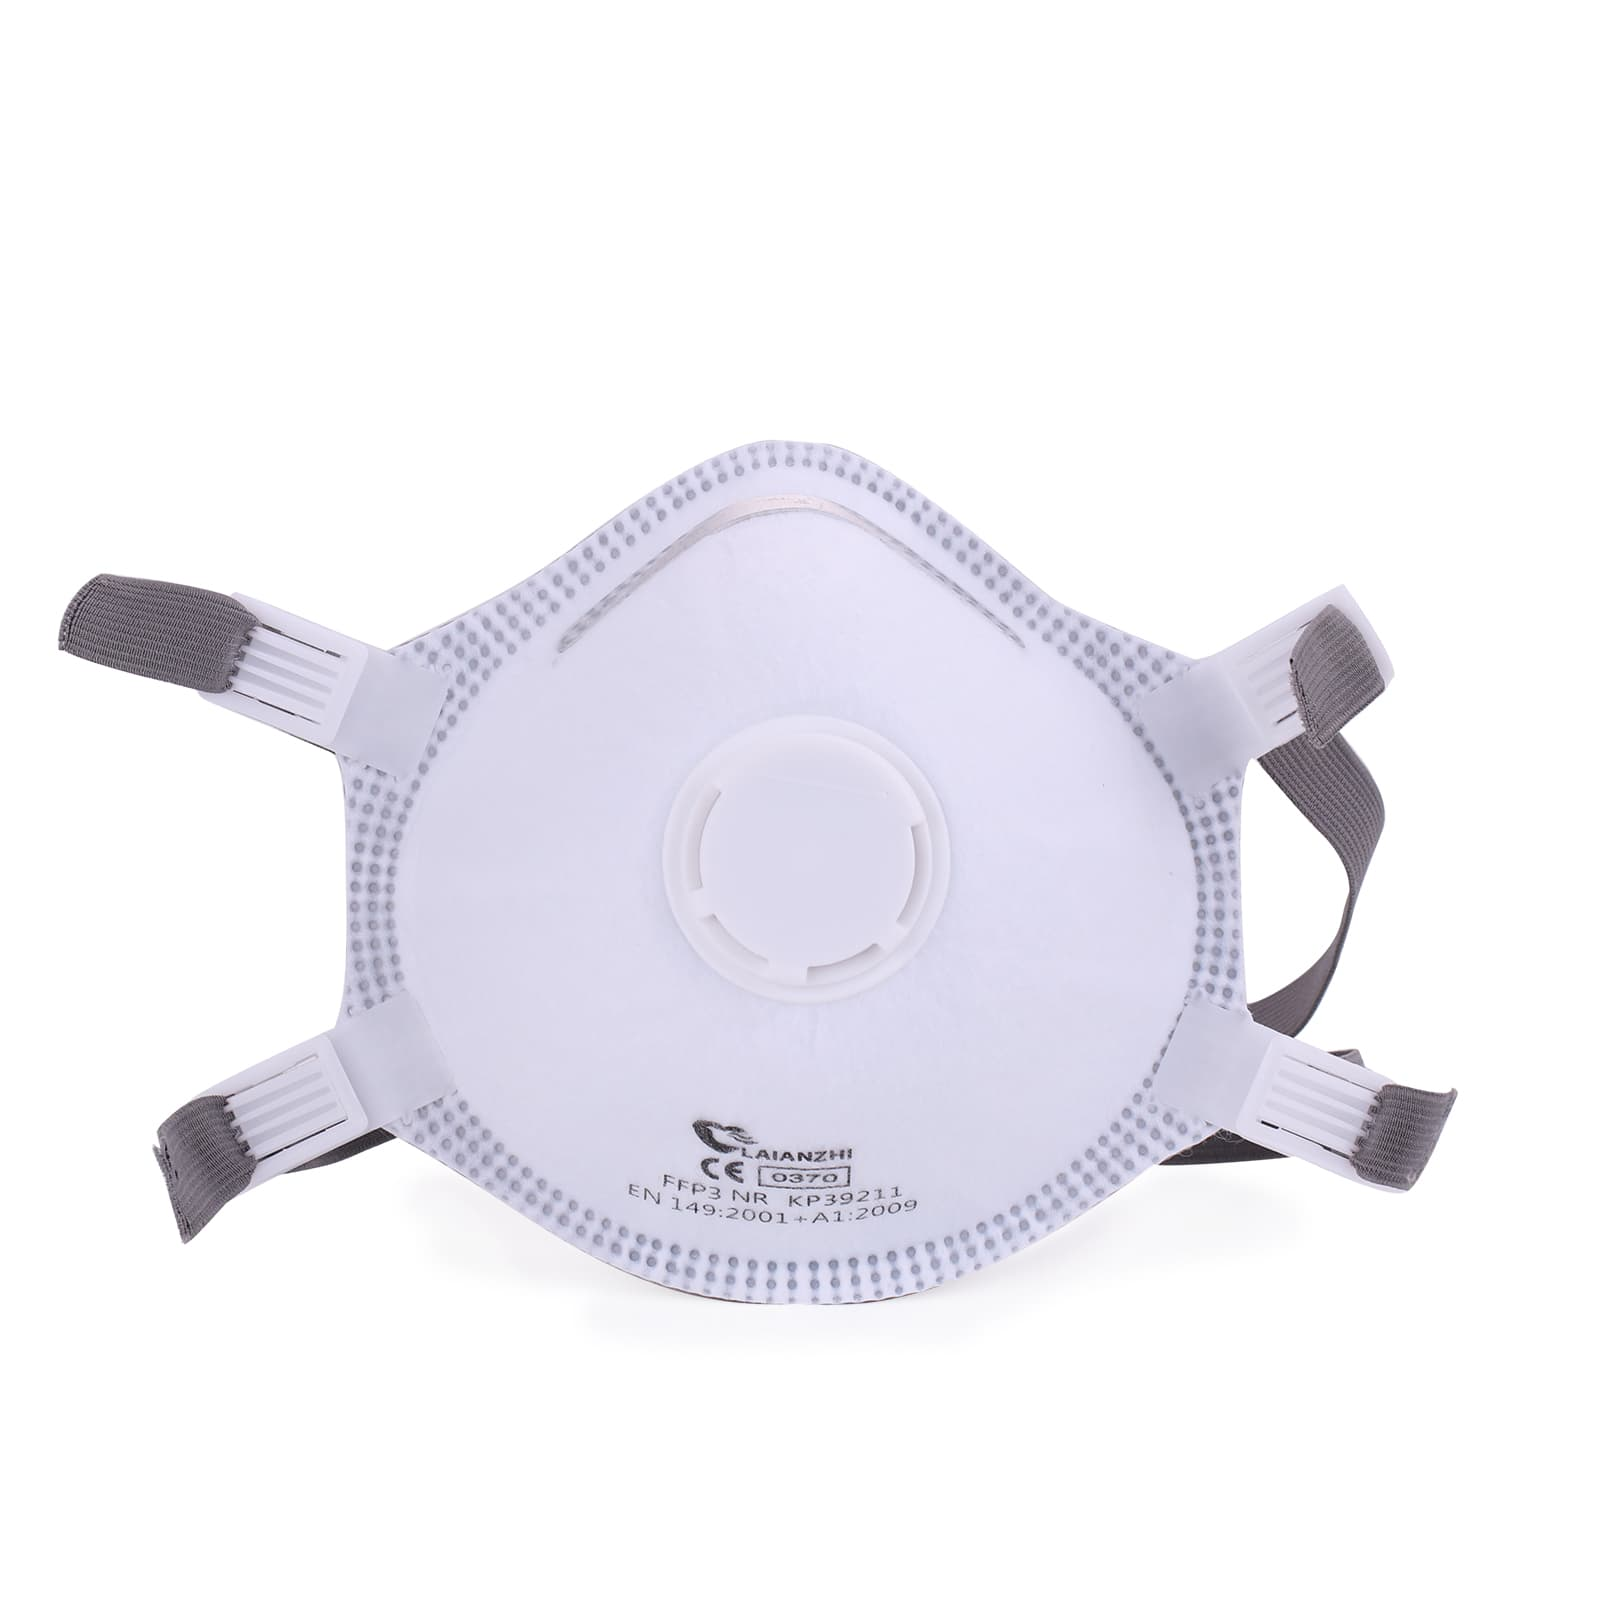 FFP3 kP39211 headband cup shape with valve disposable protective face mask